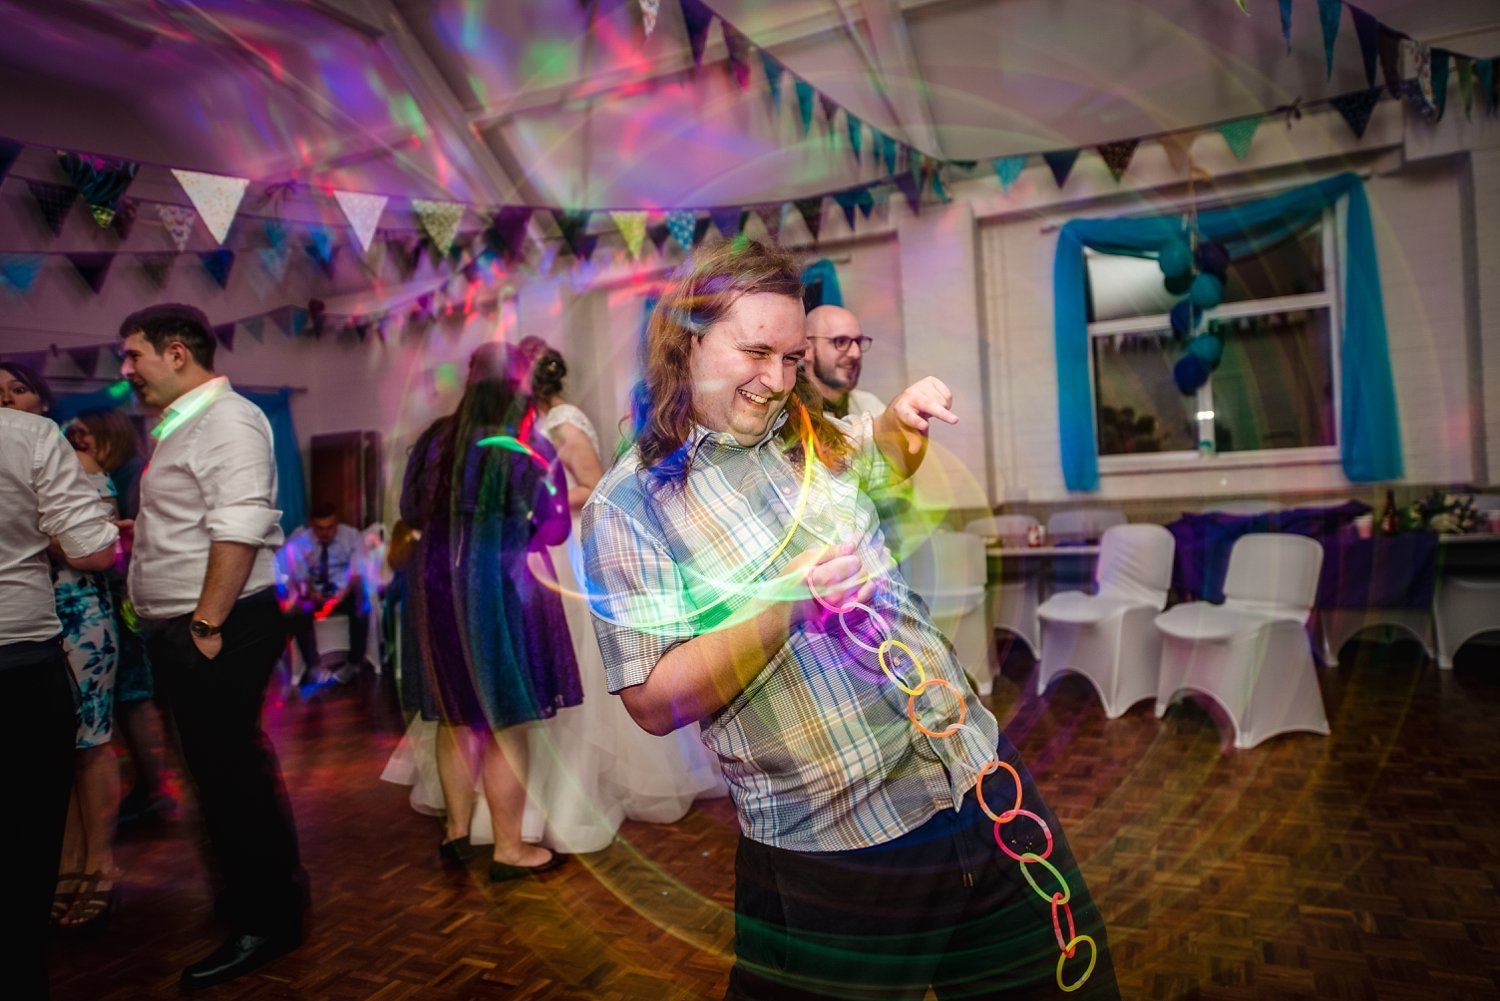 party time, wedding guest is dancing, glow sticks leave a trails of colourful light - Petersfield Wedding Photography